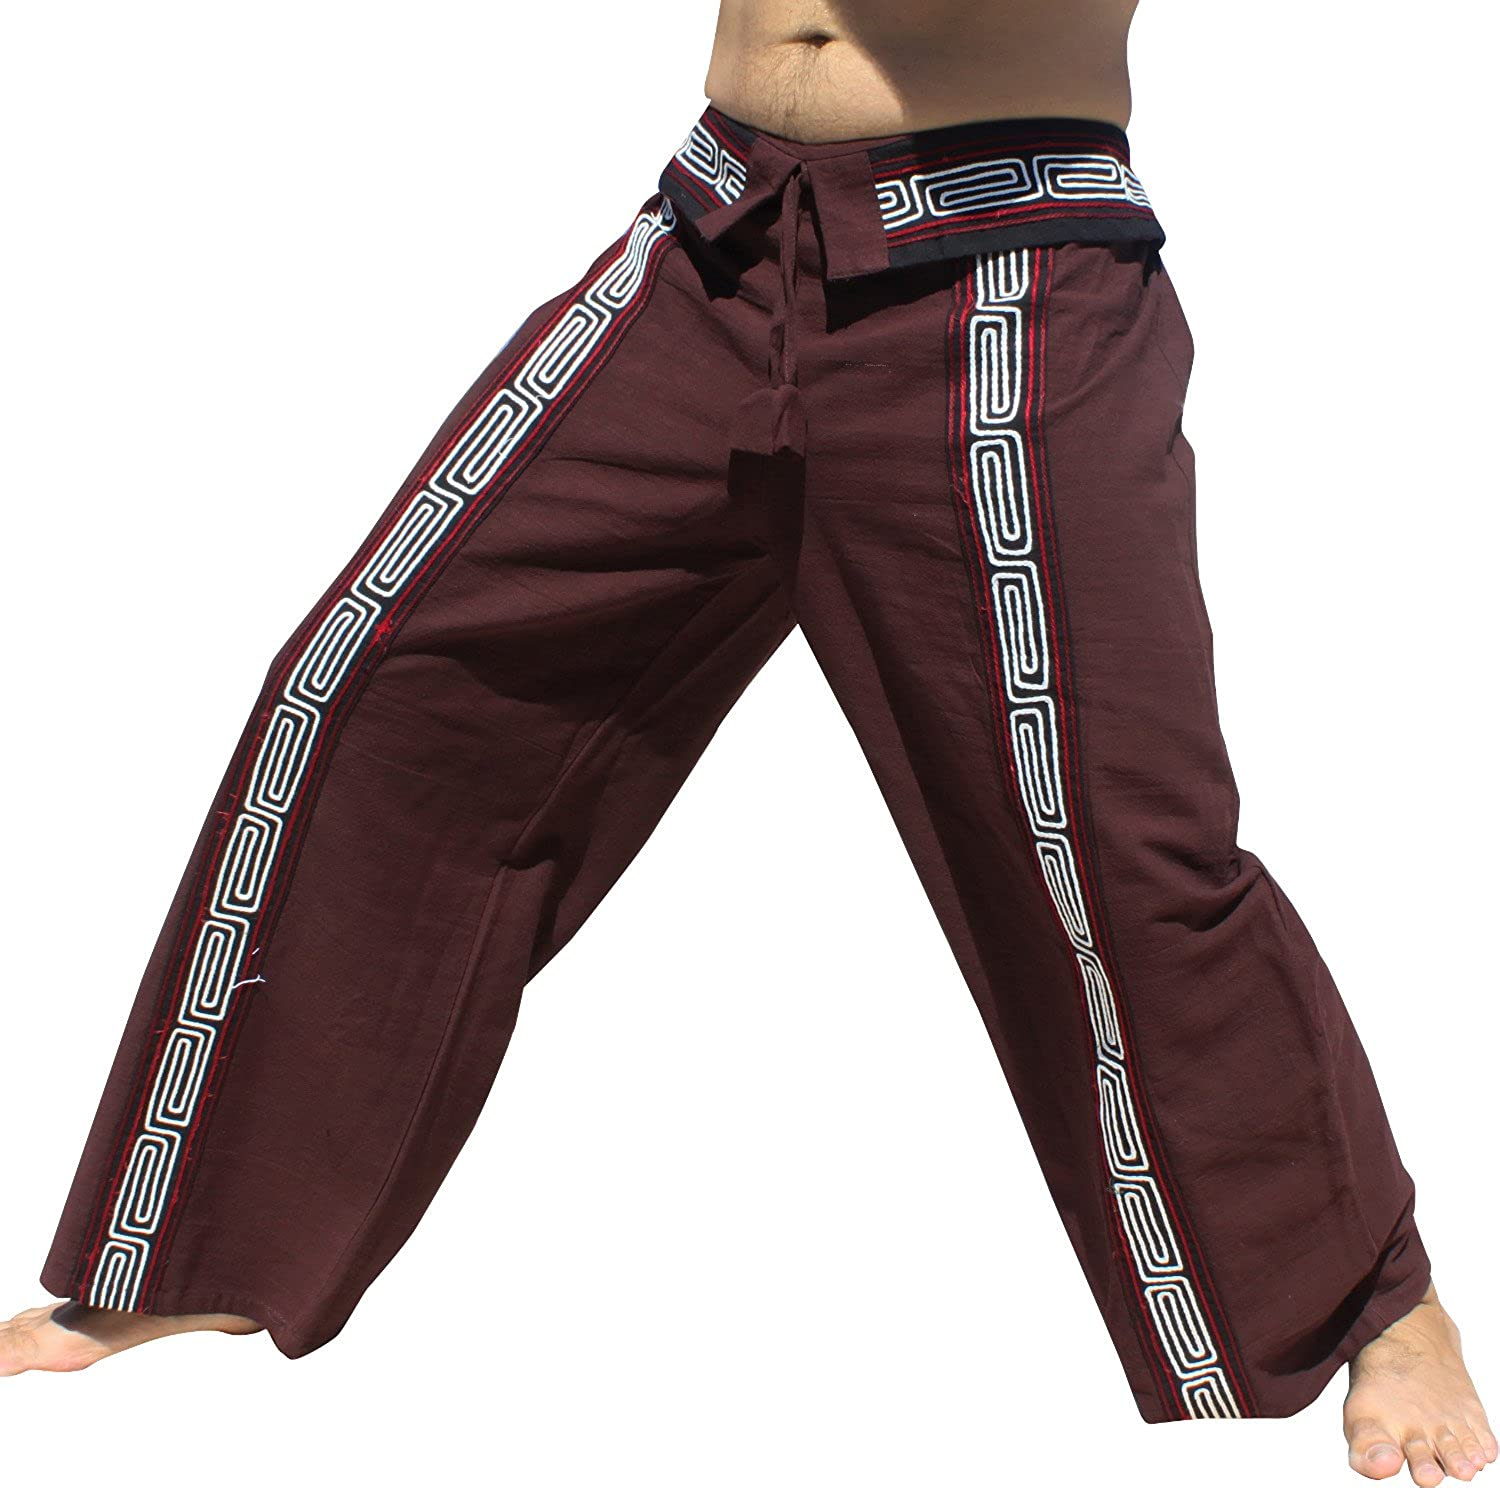 Raan Pah Muang PANTS メンズ B0784SJ69R Medium|Brown With White Rope Tones Brown With White Rope Tones Medium